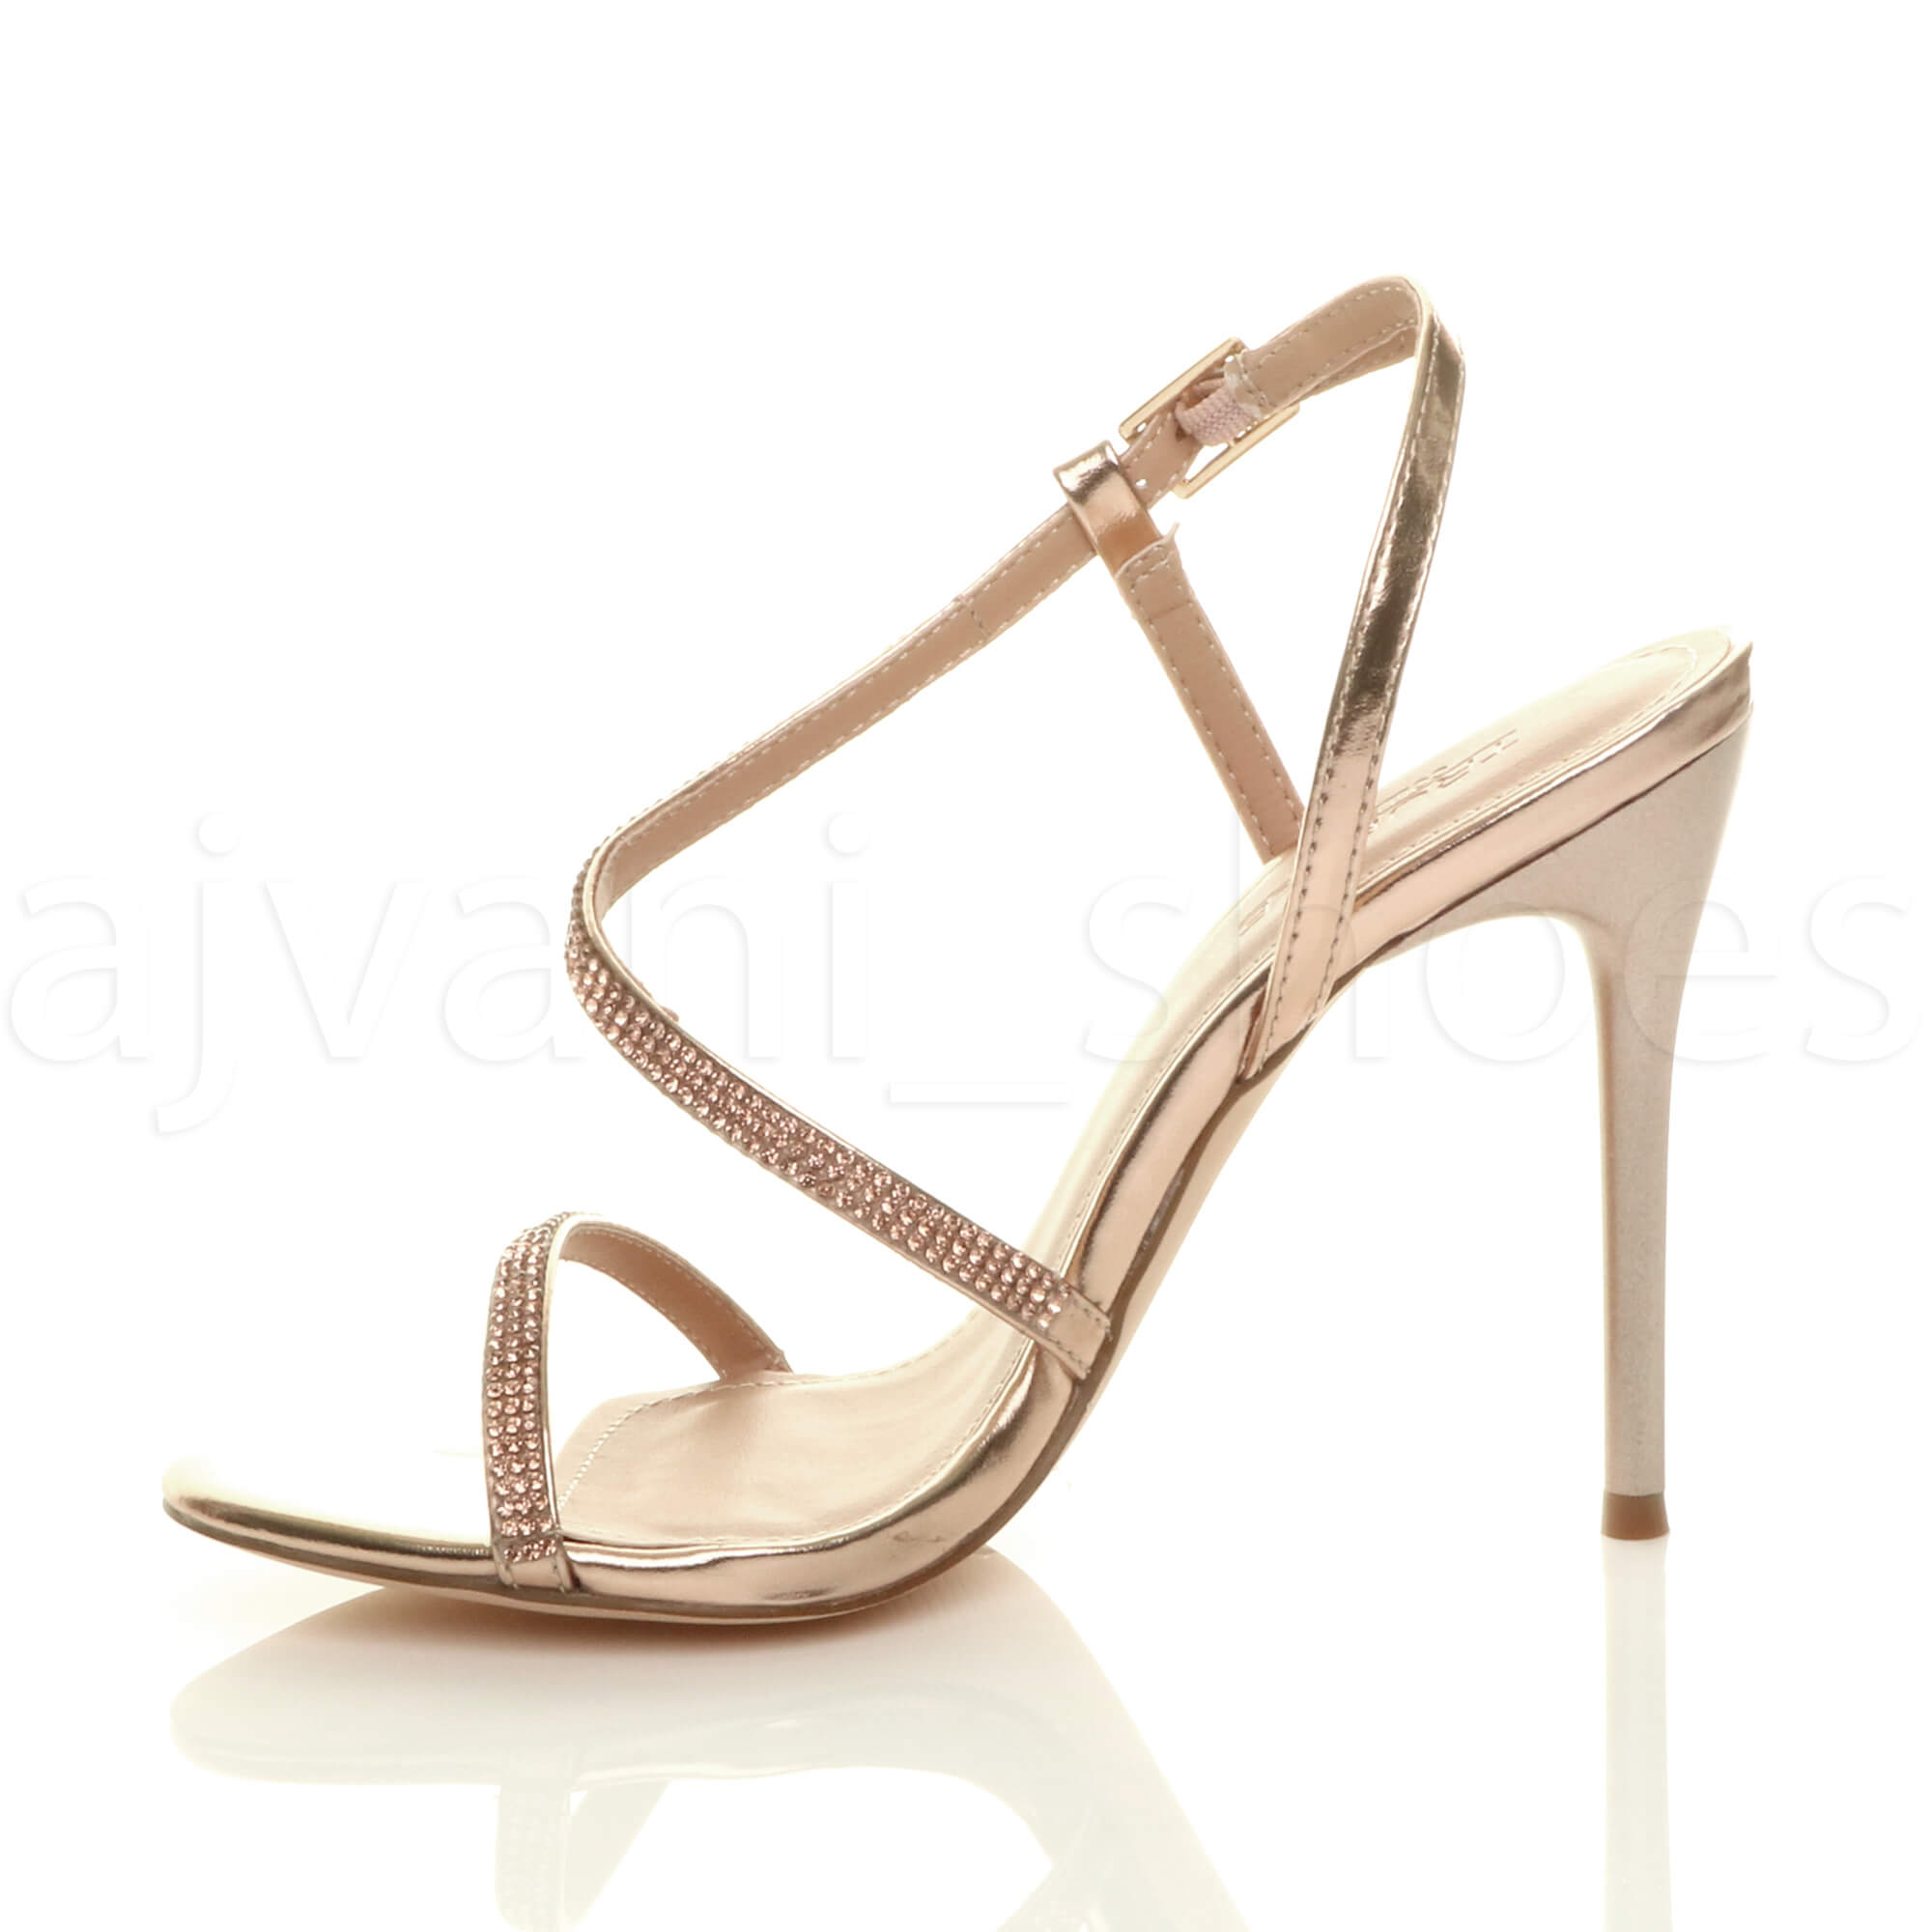 WOMENS-LADIES-HIGH-HEEL-DIAMANTE-BARELY-THERE-STRAPPY-EVENING-SANDALS-SIZE thumbnail 12